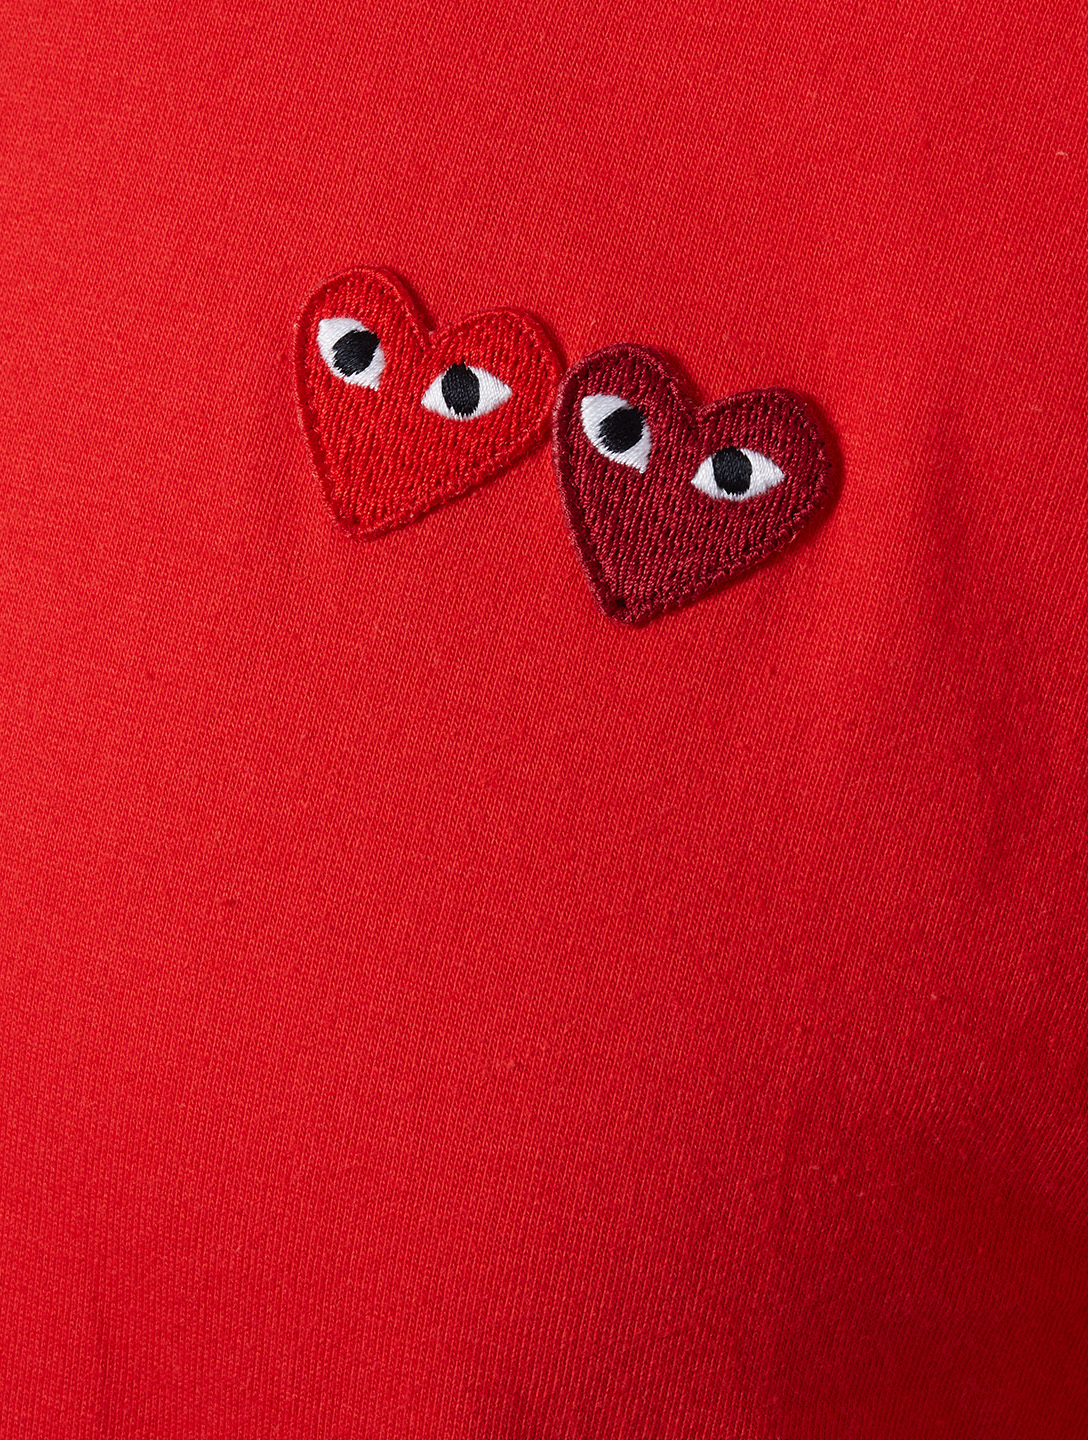 COMME DES GARÇONS PLAY Double Heart Patch T-Shirt Men's Red